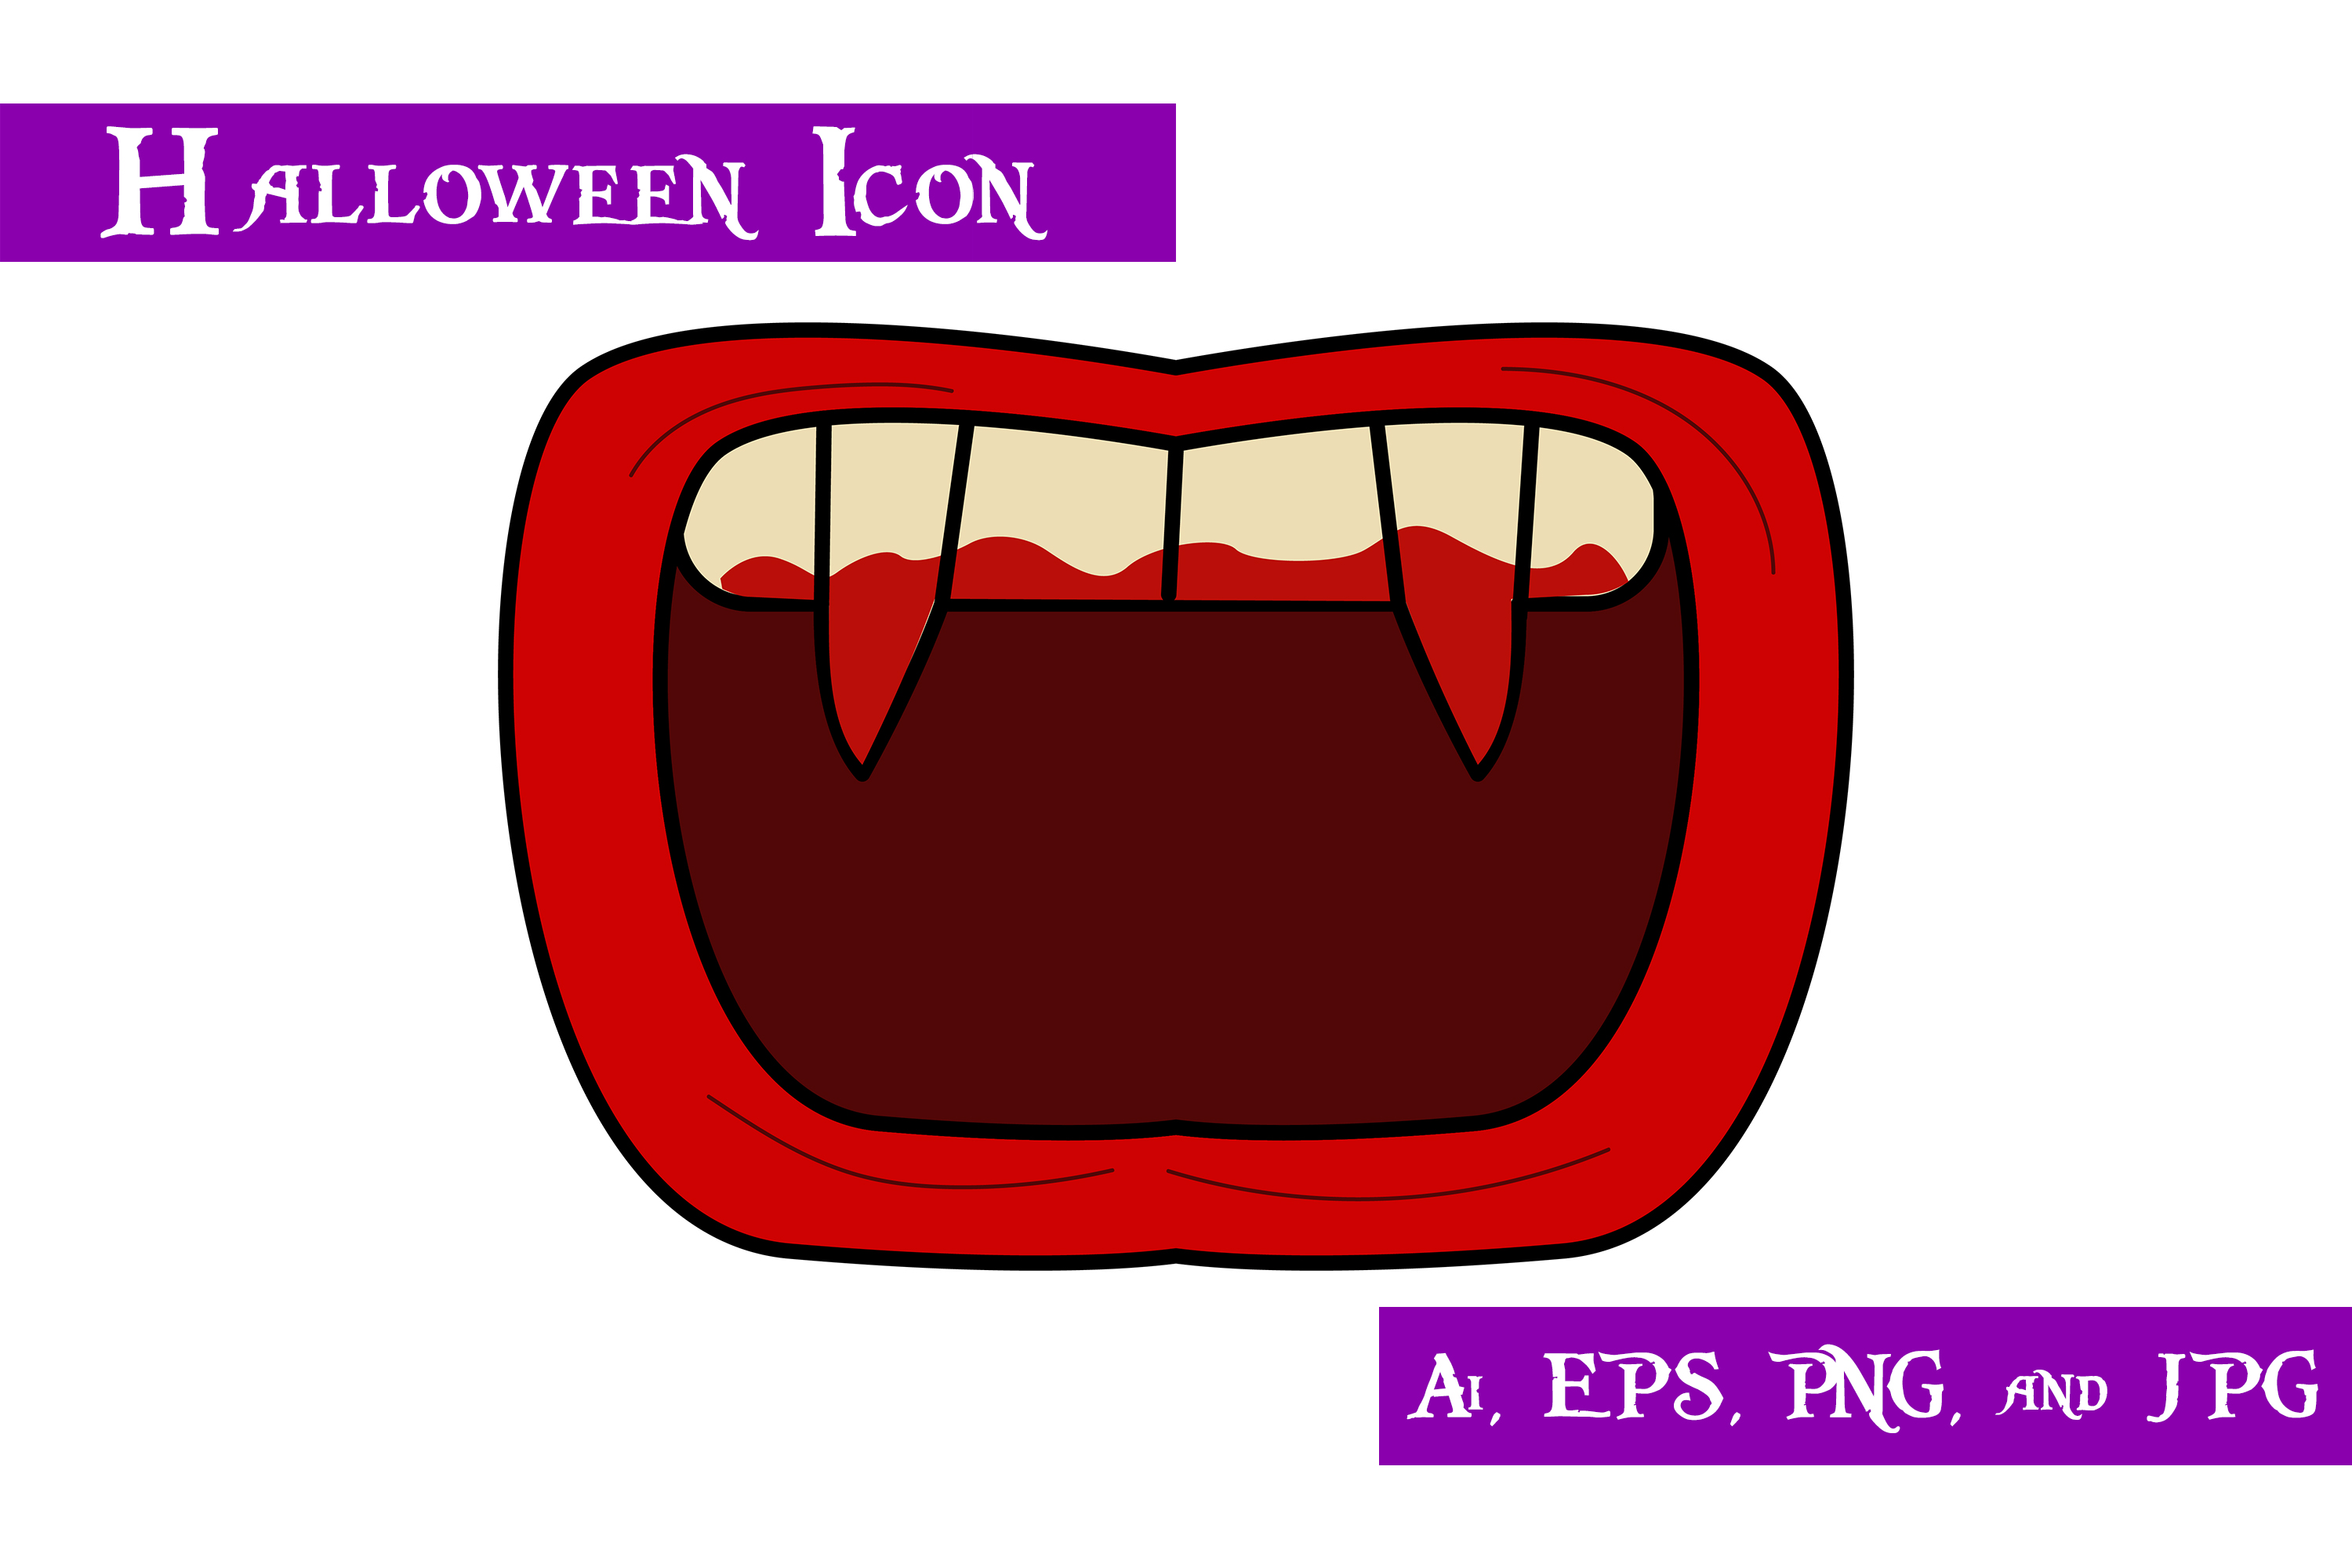 Download Free Dracula Teeth Halloween Icon Graphic By Purplespoonpirates for Cricut Explore, Silhouette and other cutting machines.